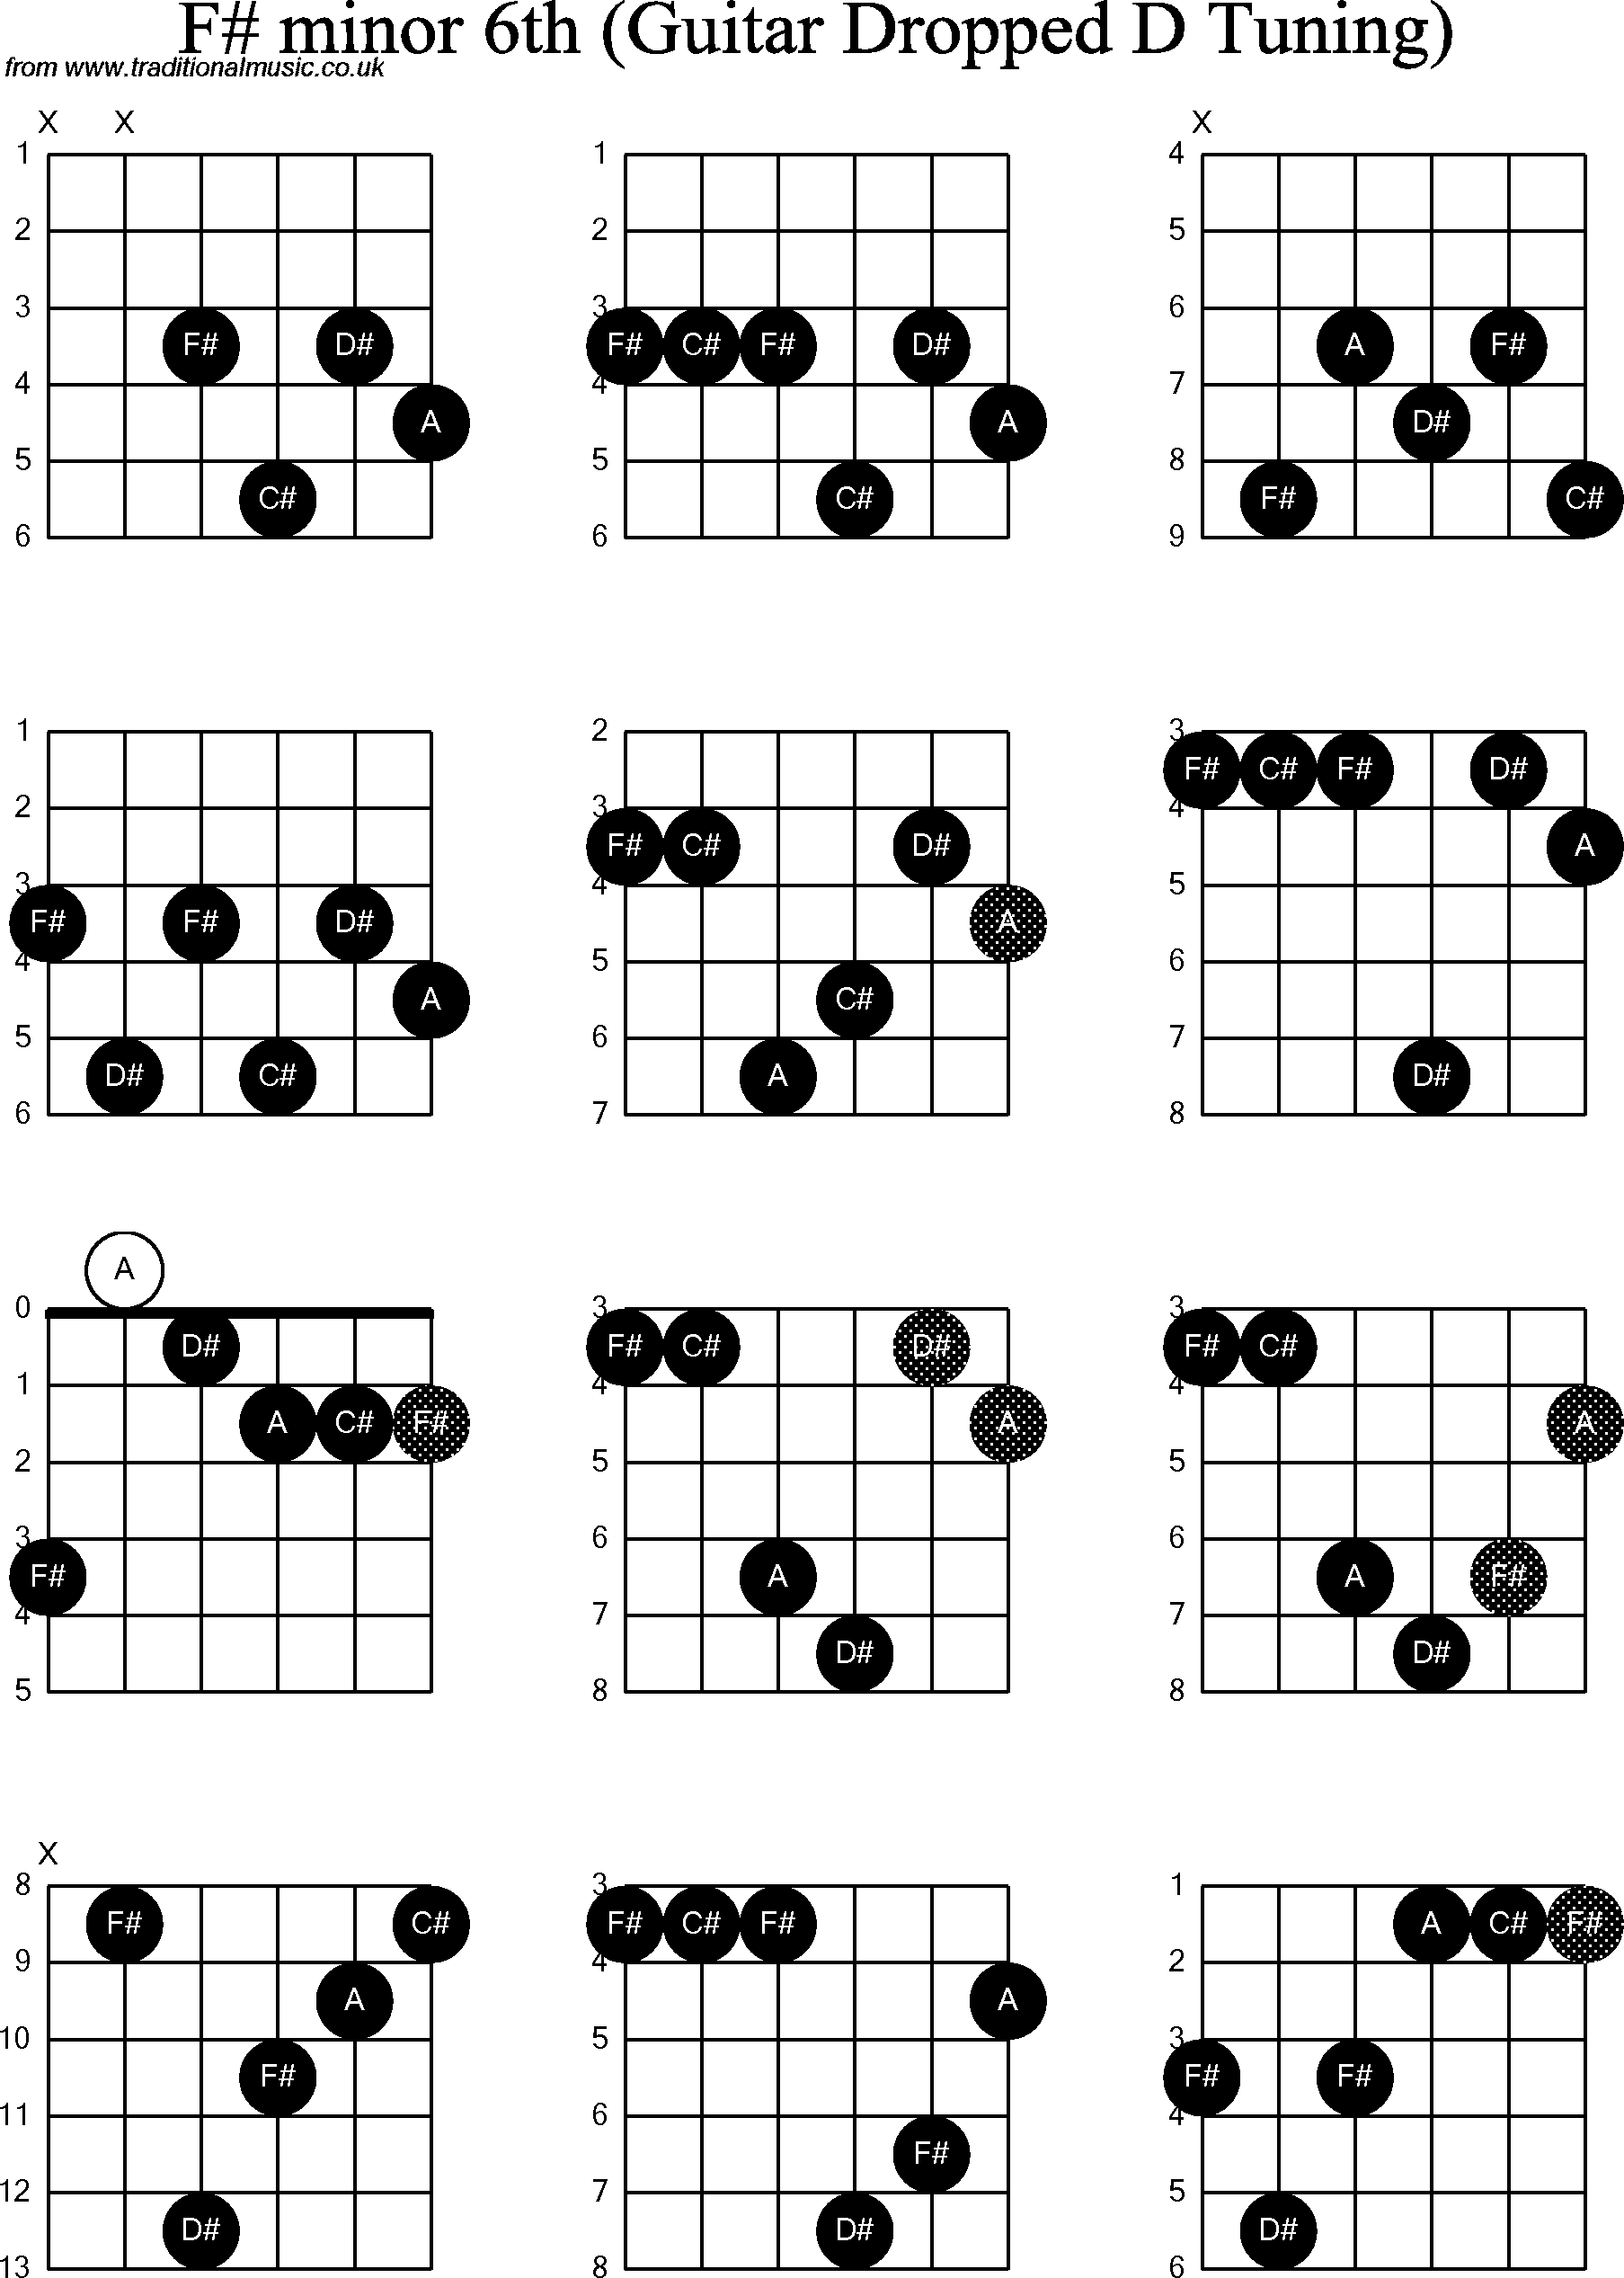 Chord Diagrams For Dropped D Guitardadgbe F Sharp Minor6th